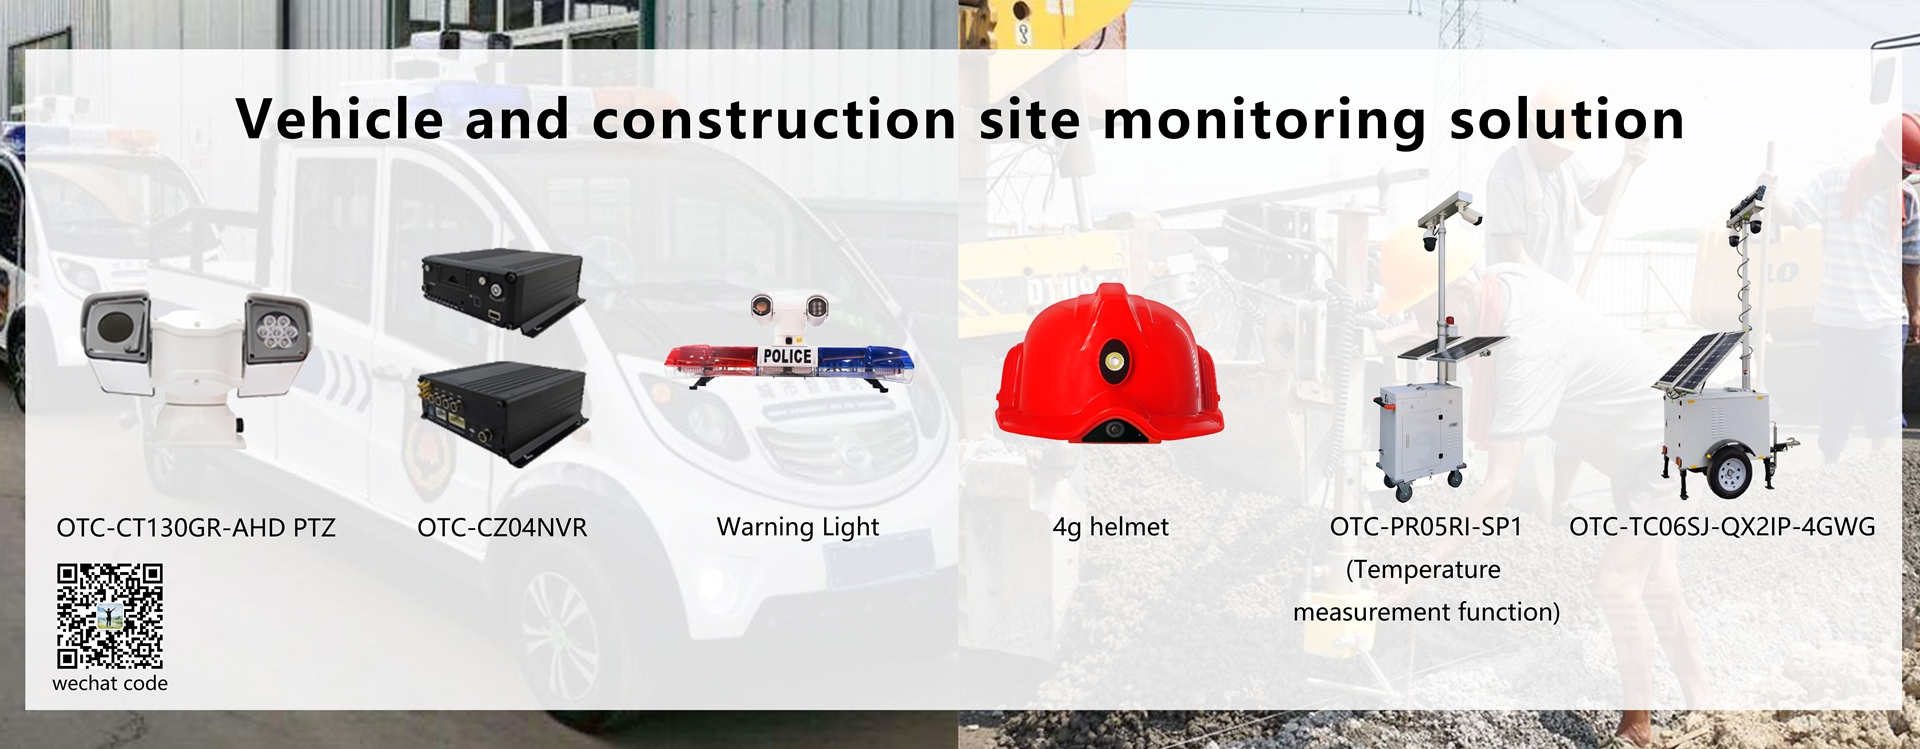 Vehicle and construction site monitoring solution